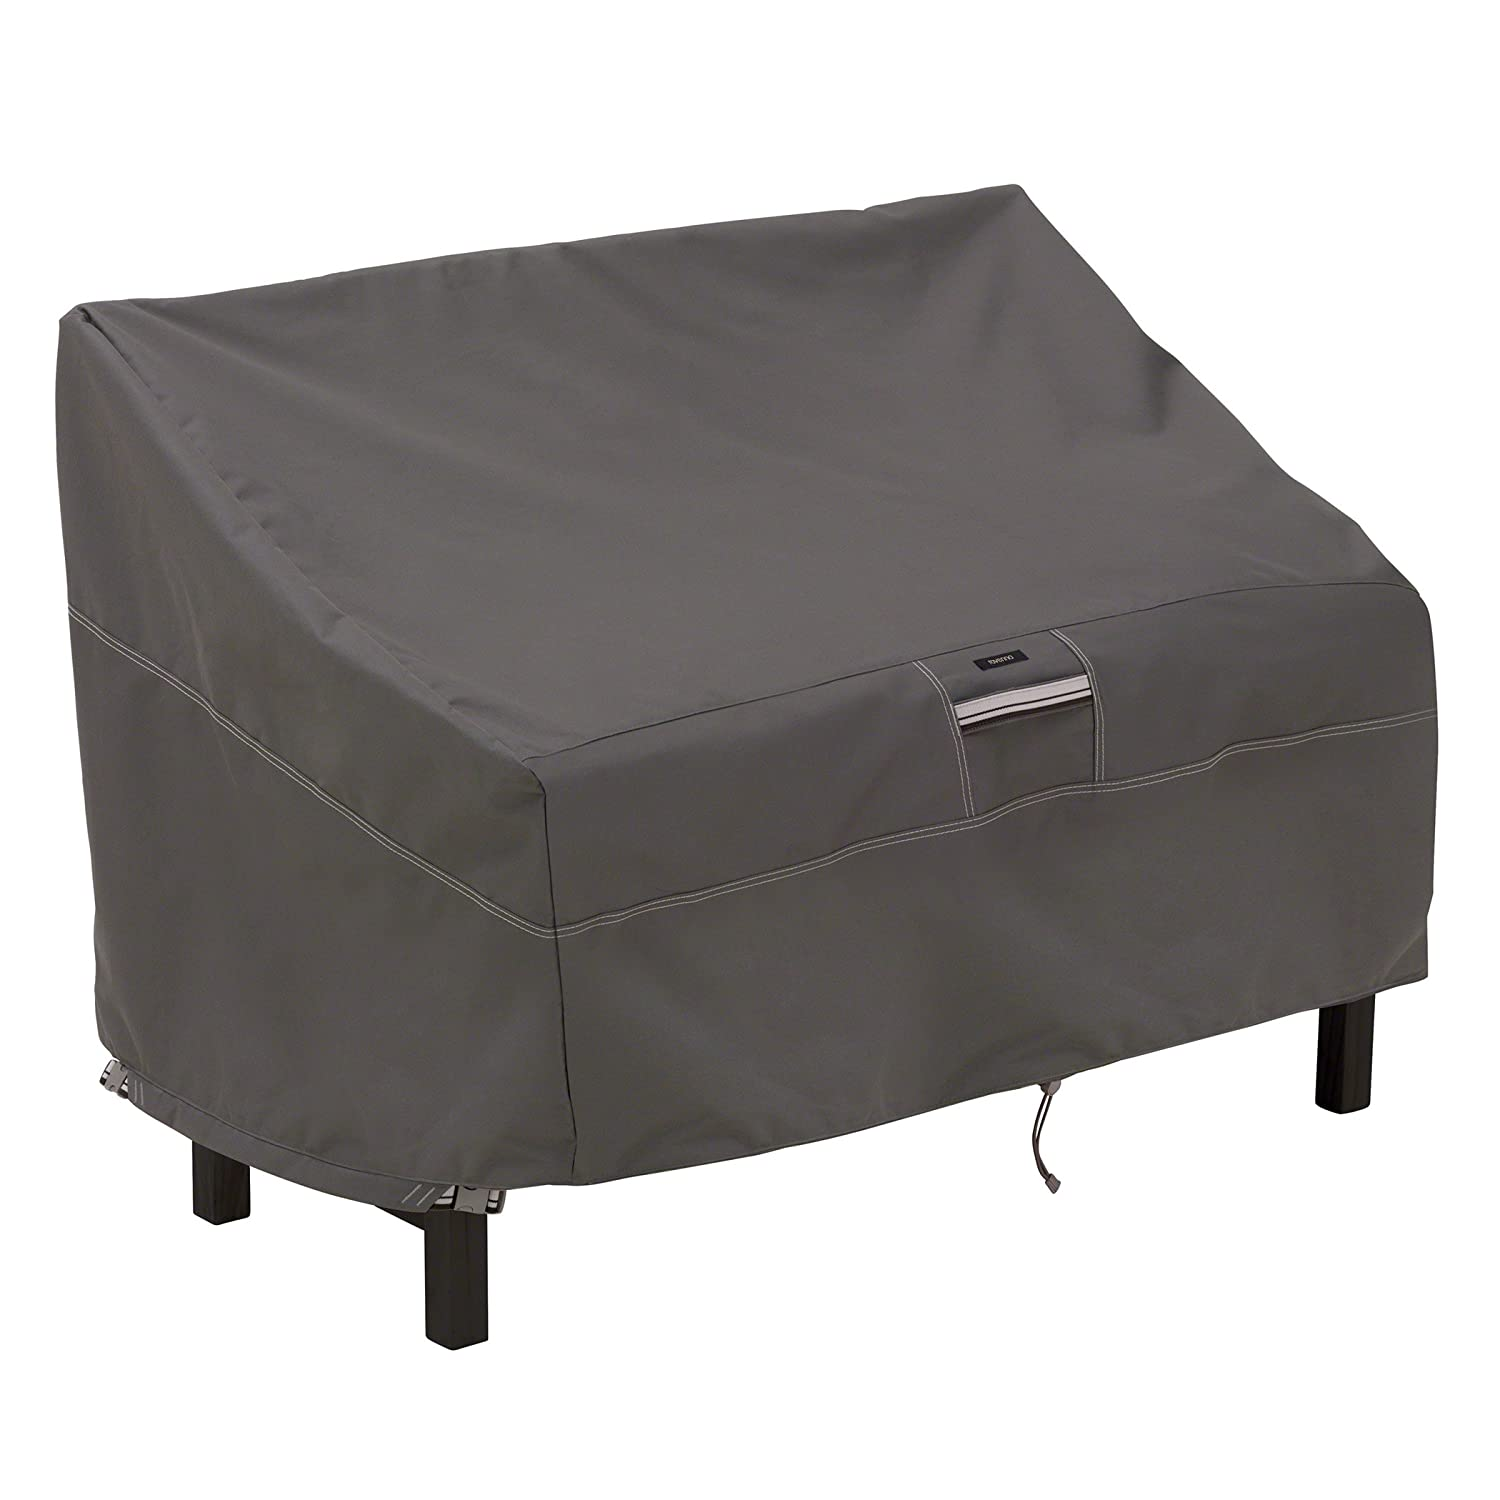 cushion world arden covers seat slipcover market seating replacement bench outdoor deep cover